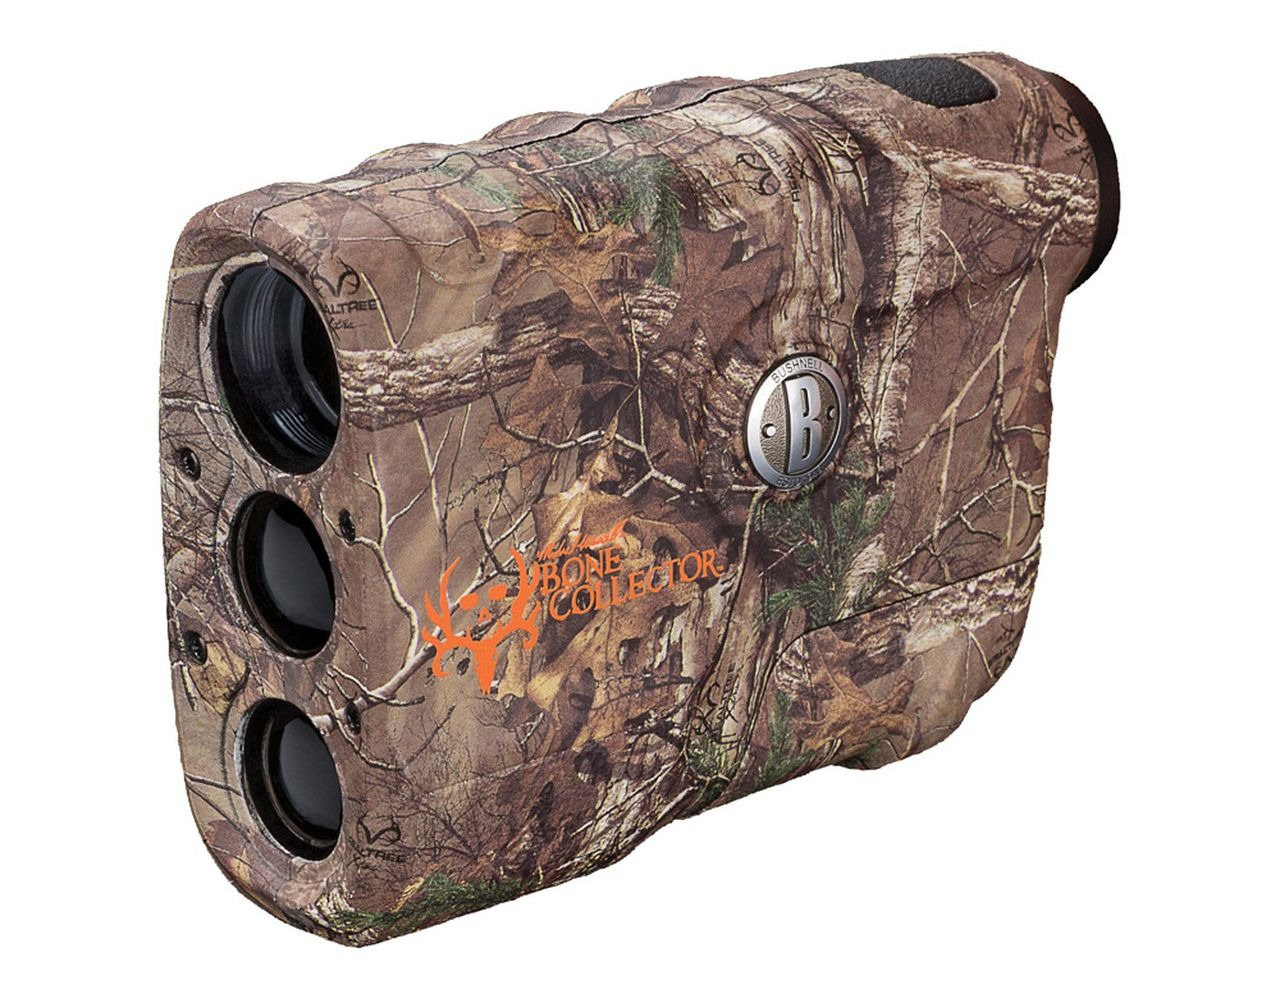 Image of Dalmierz bushnell bone collector 4x20 realtree (202208)